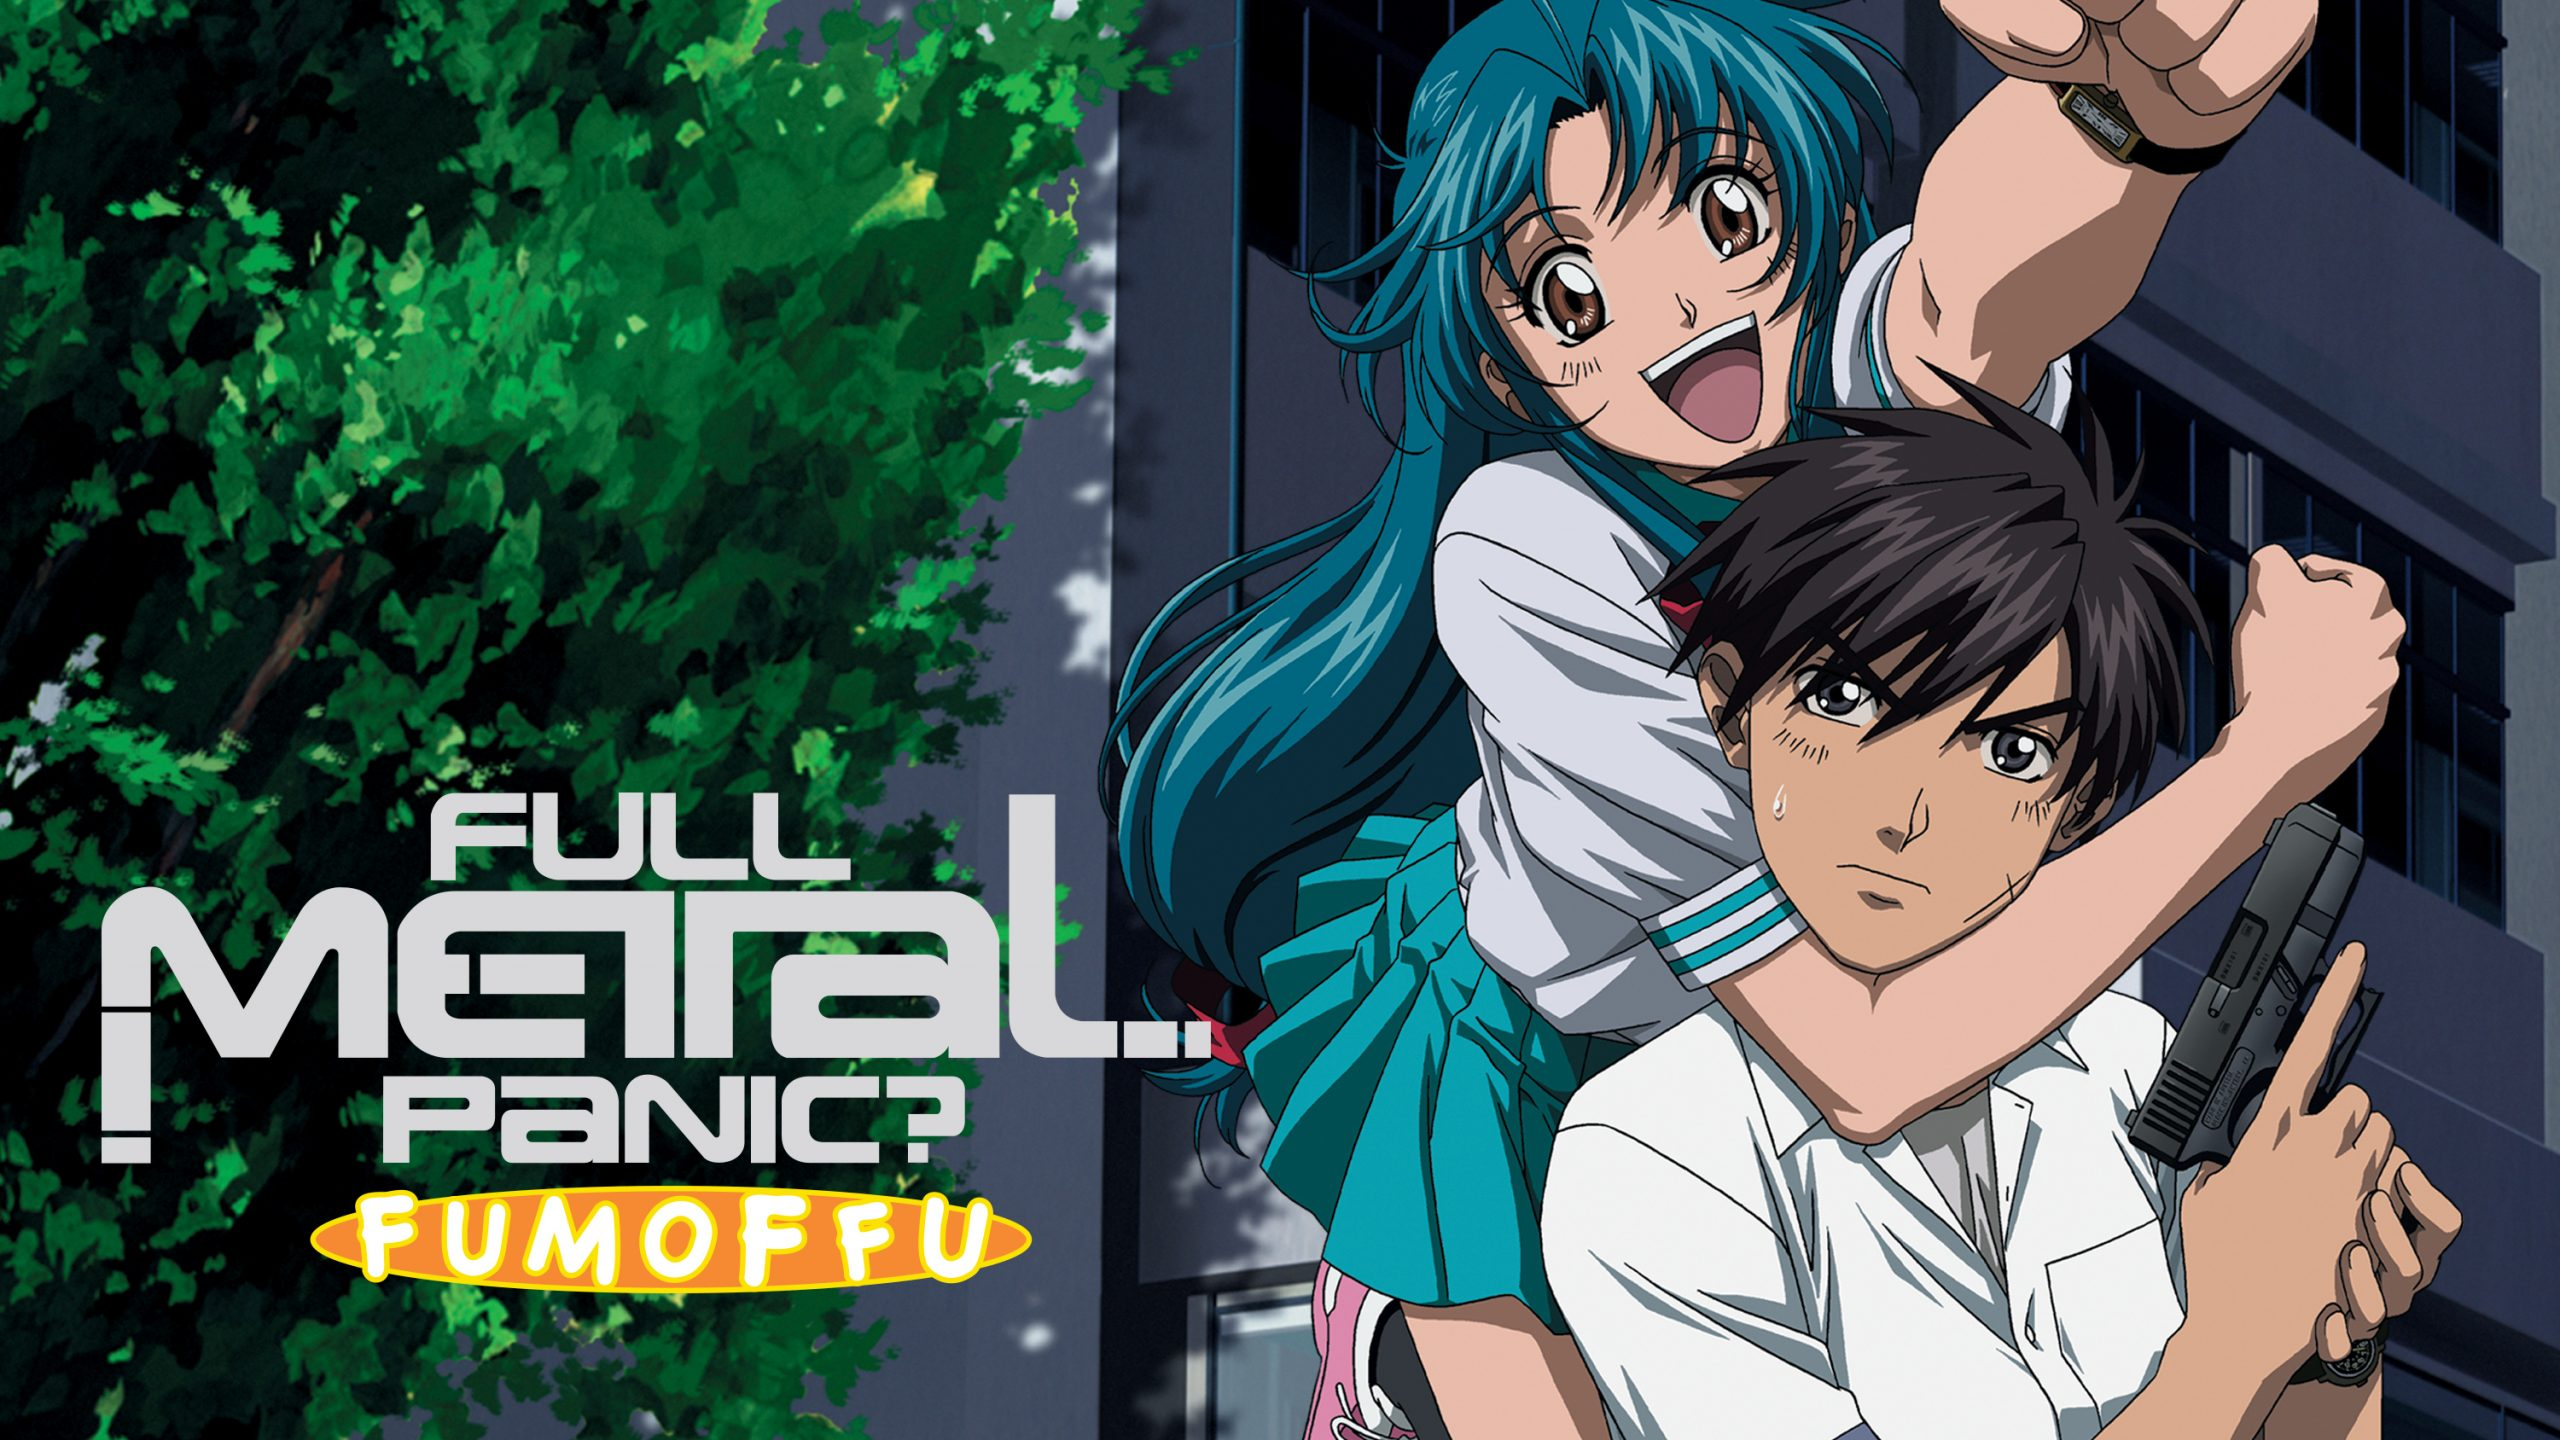 Full Metal Panic Fumoffu scaled